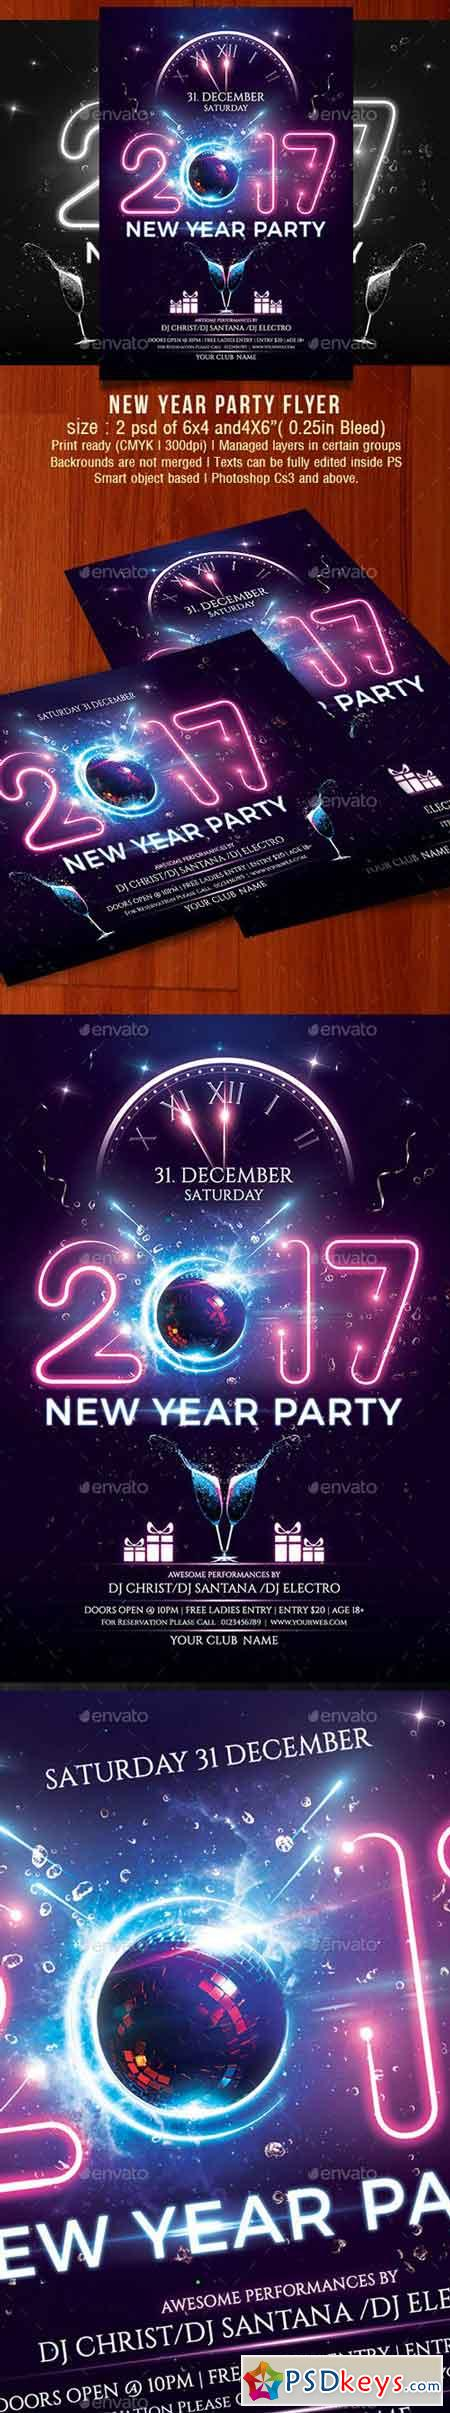 New Year Party Flyer - 18924235